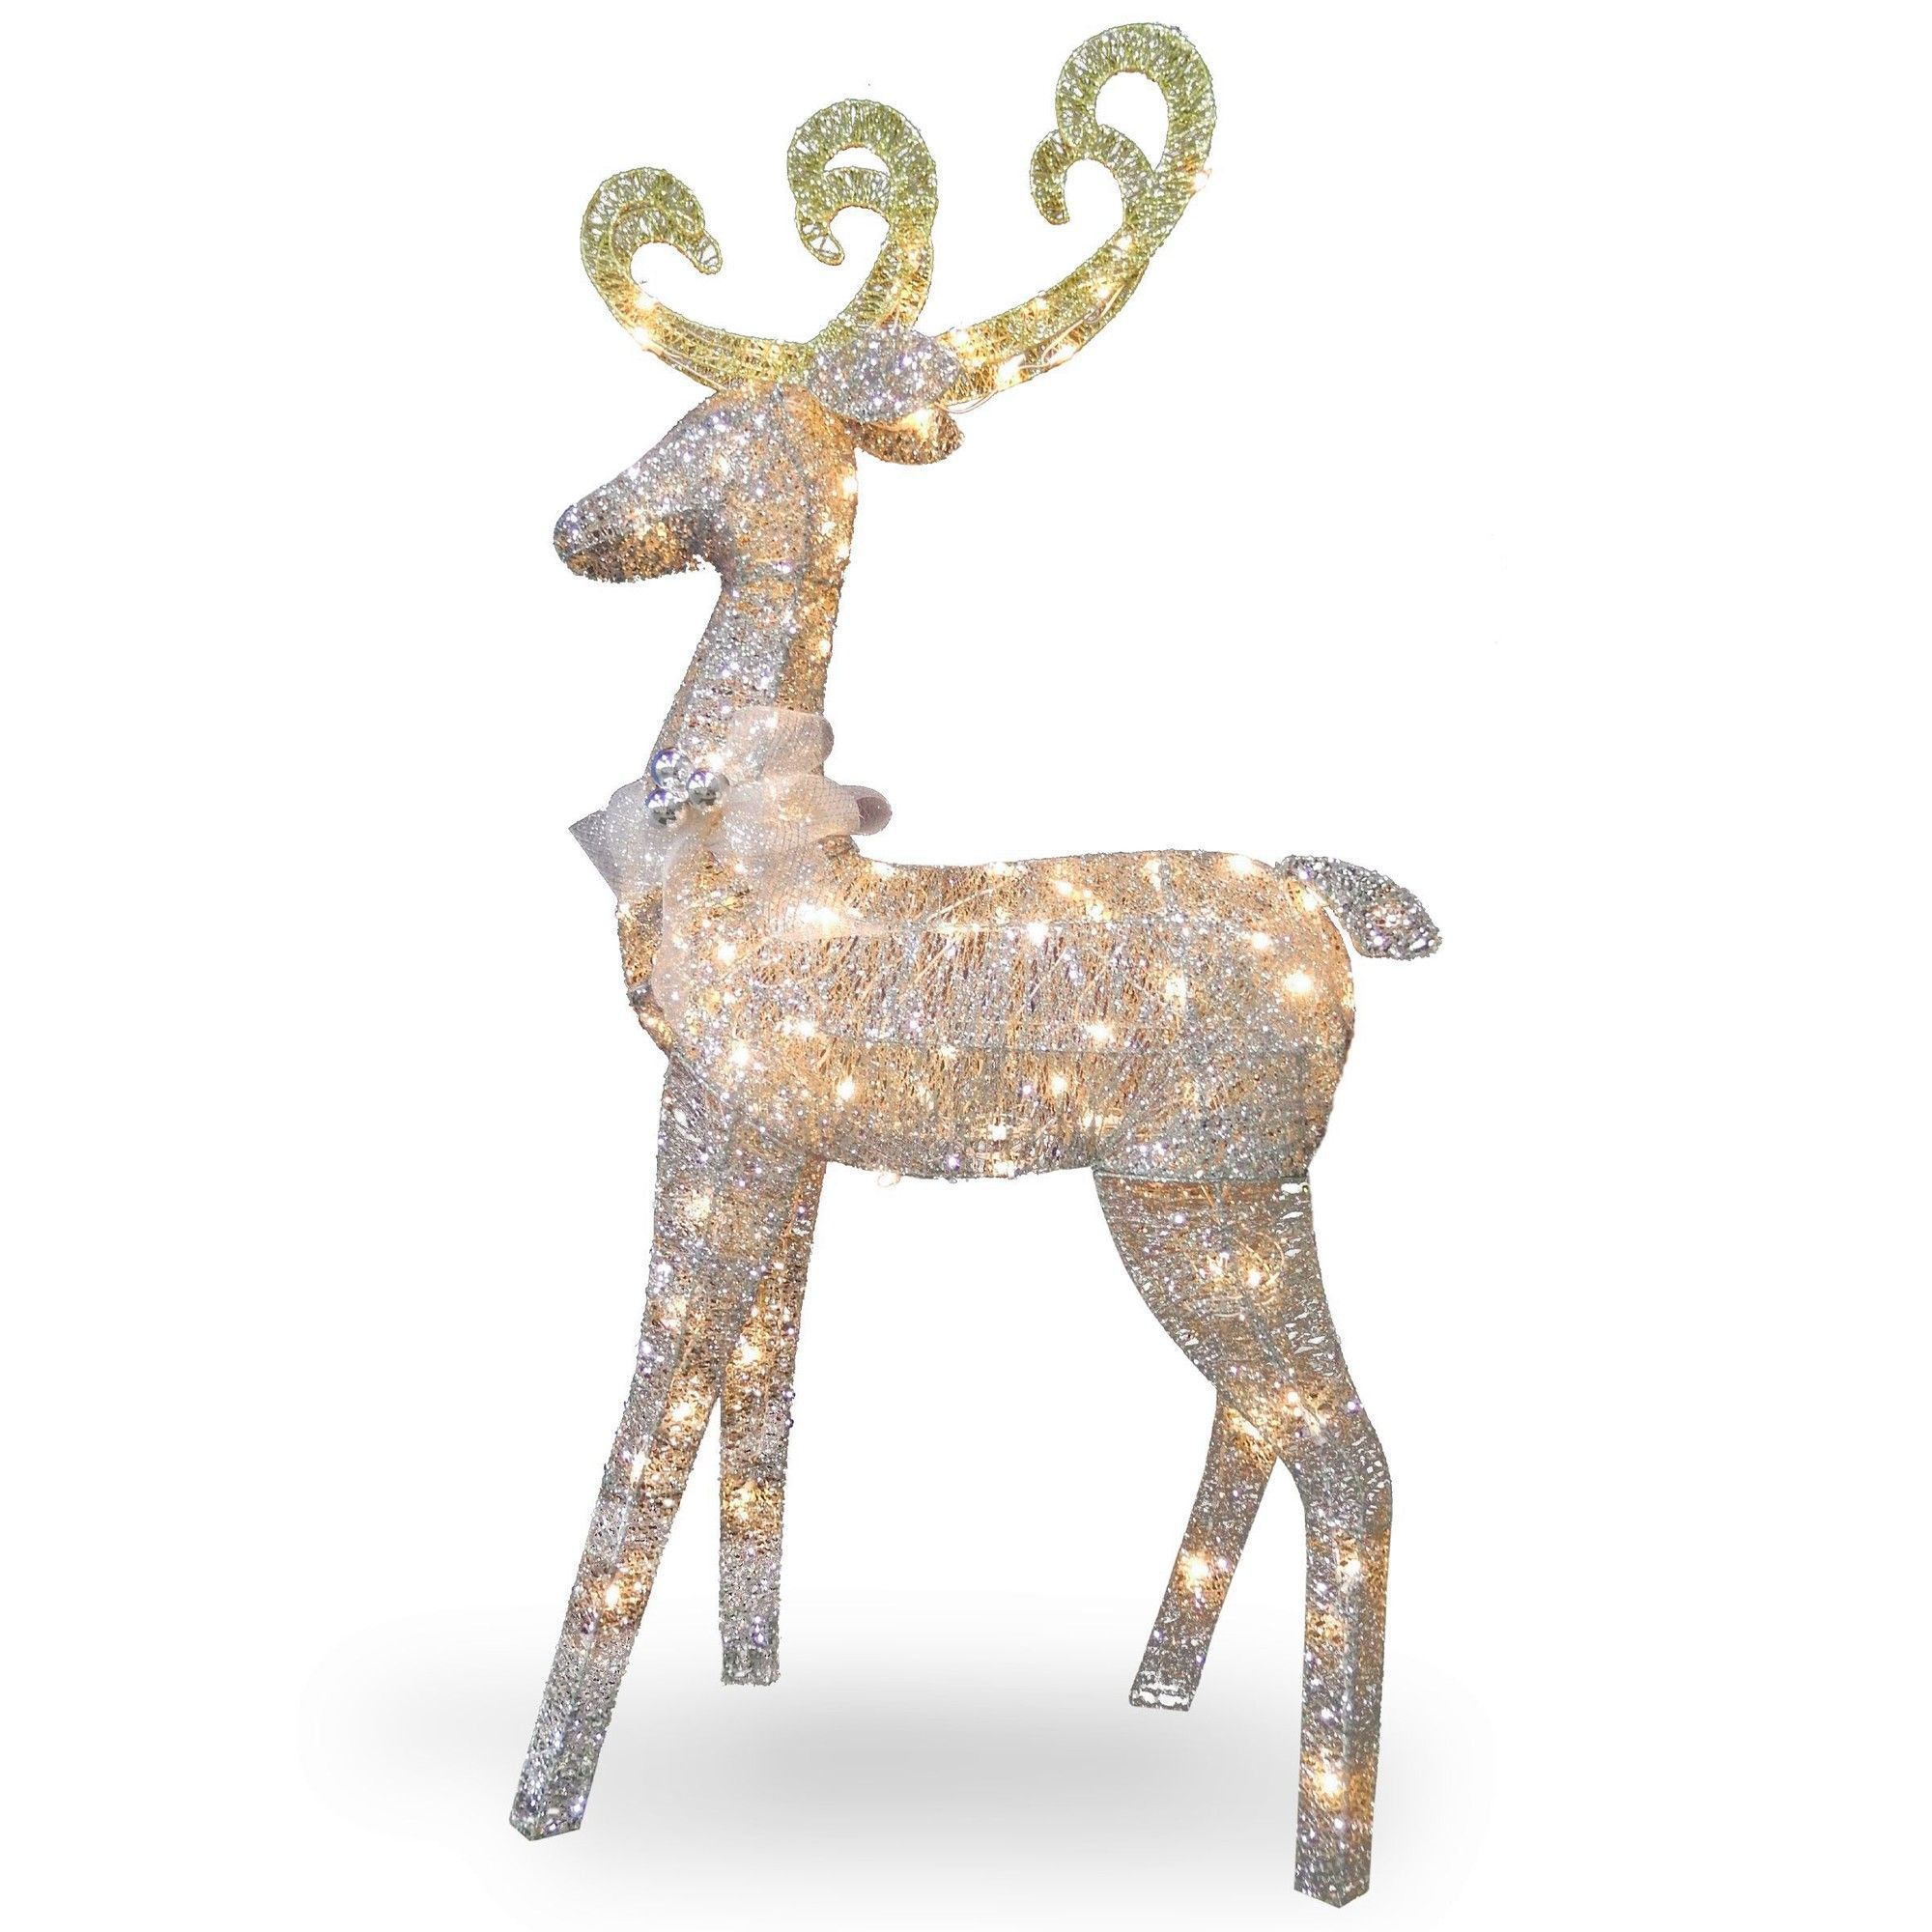 Crystal Standing Deer Christmas Decoration Decorating With Christmas Lights Outdoor Holiday Decor Reindeer Decorations